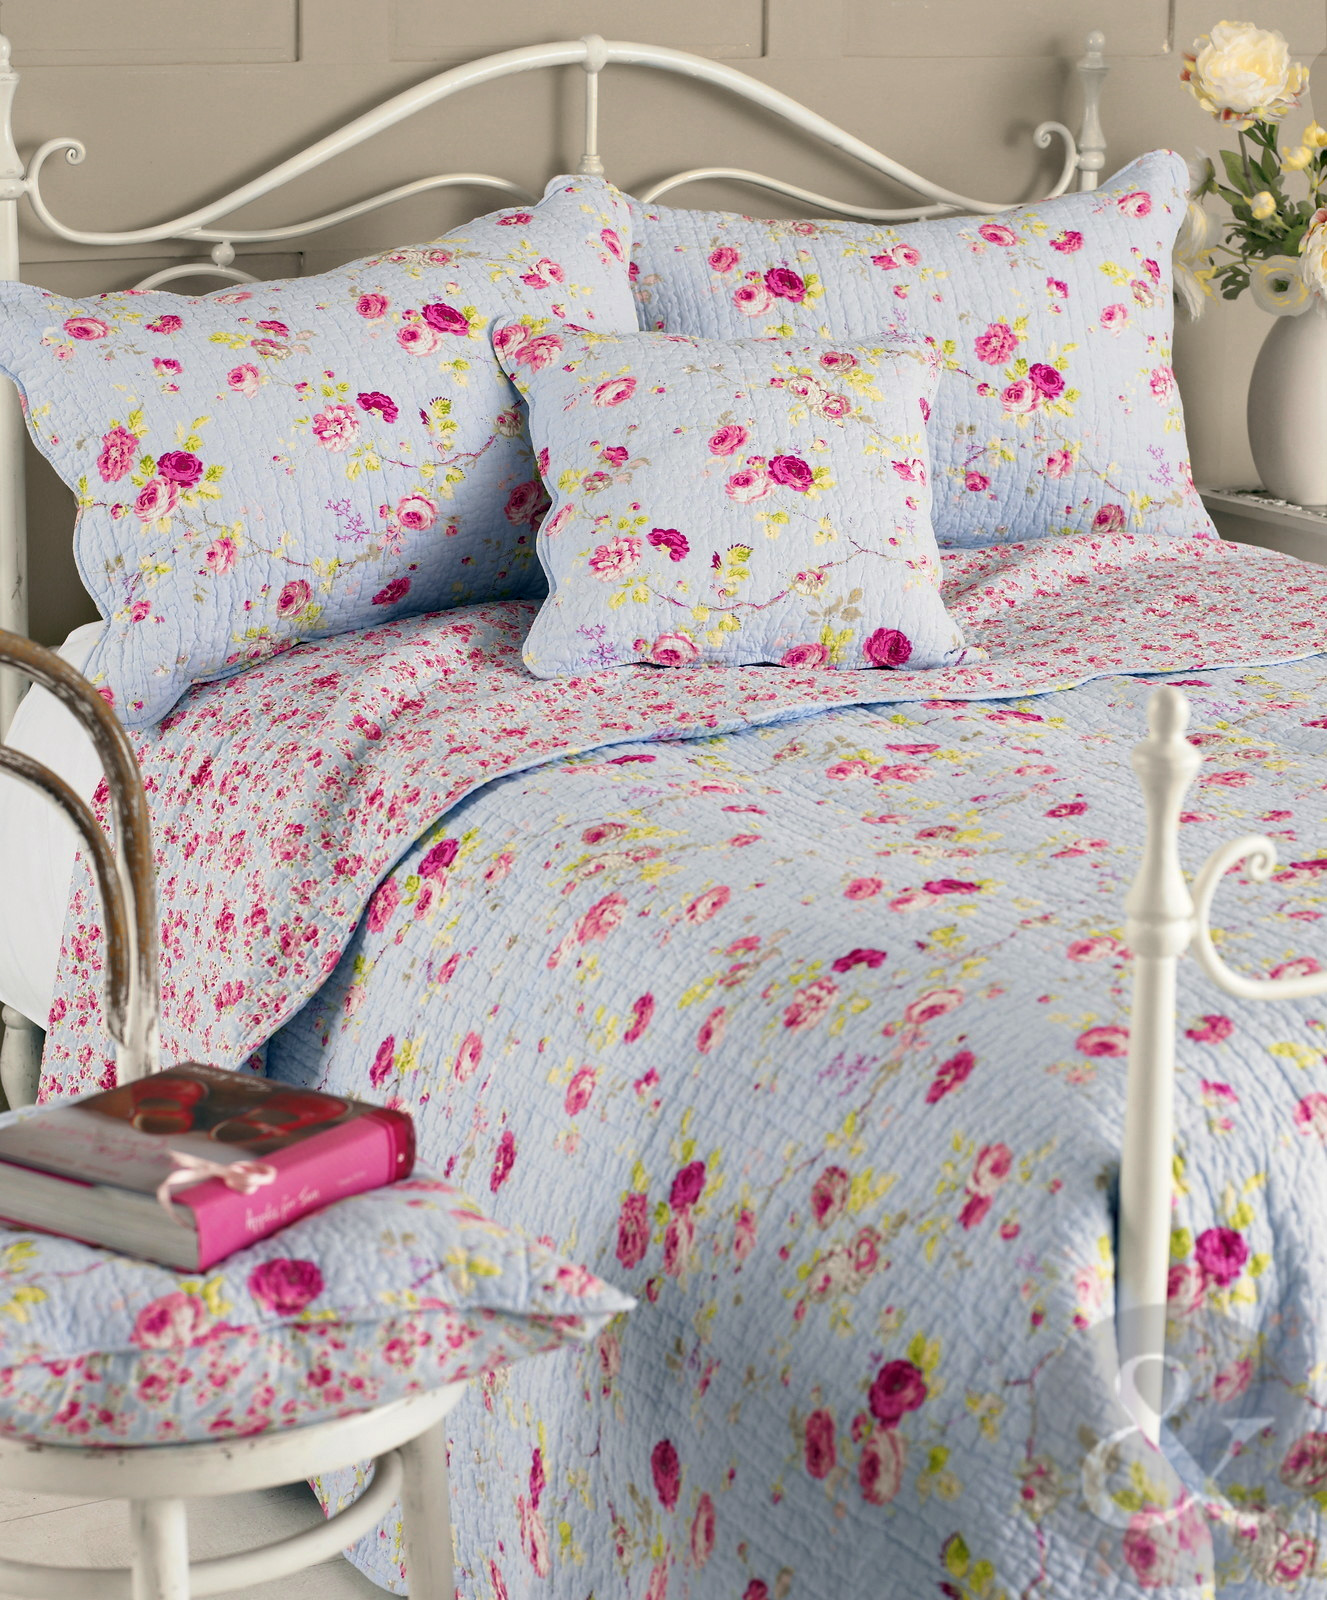 Shabby Chic Teenage Bedroom Floral Vintage Cotton Bedspread Luxury Shabby Chic Quilted